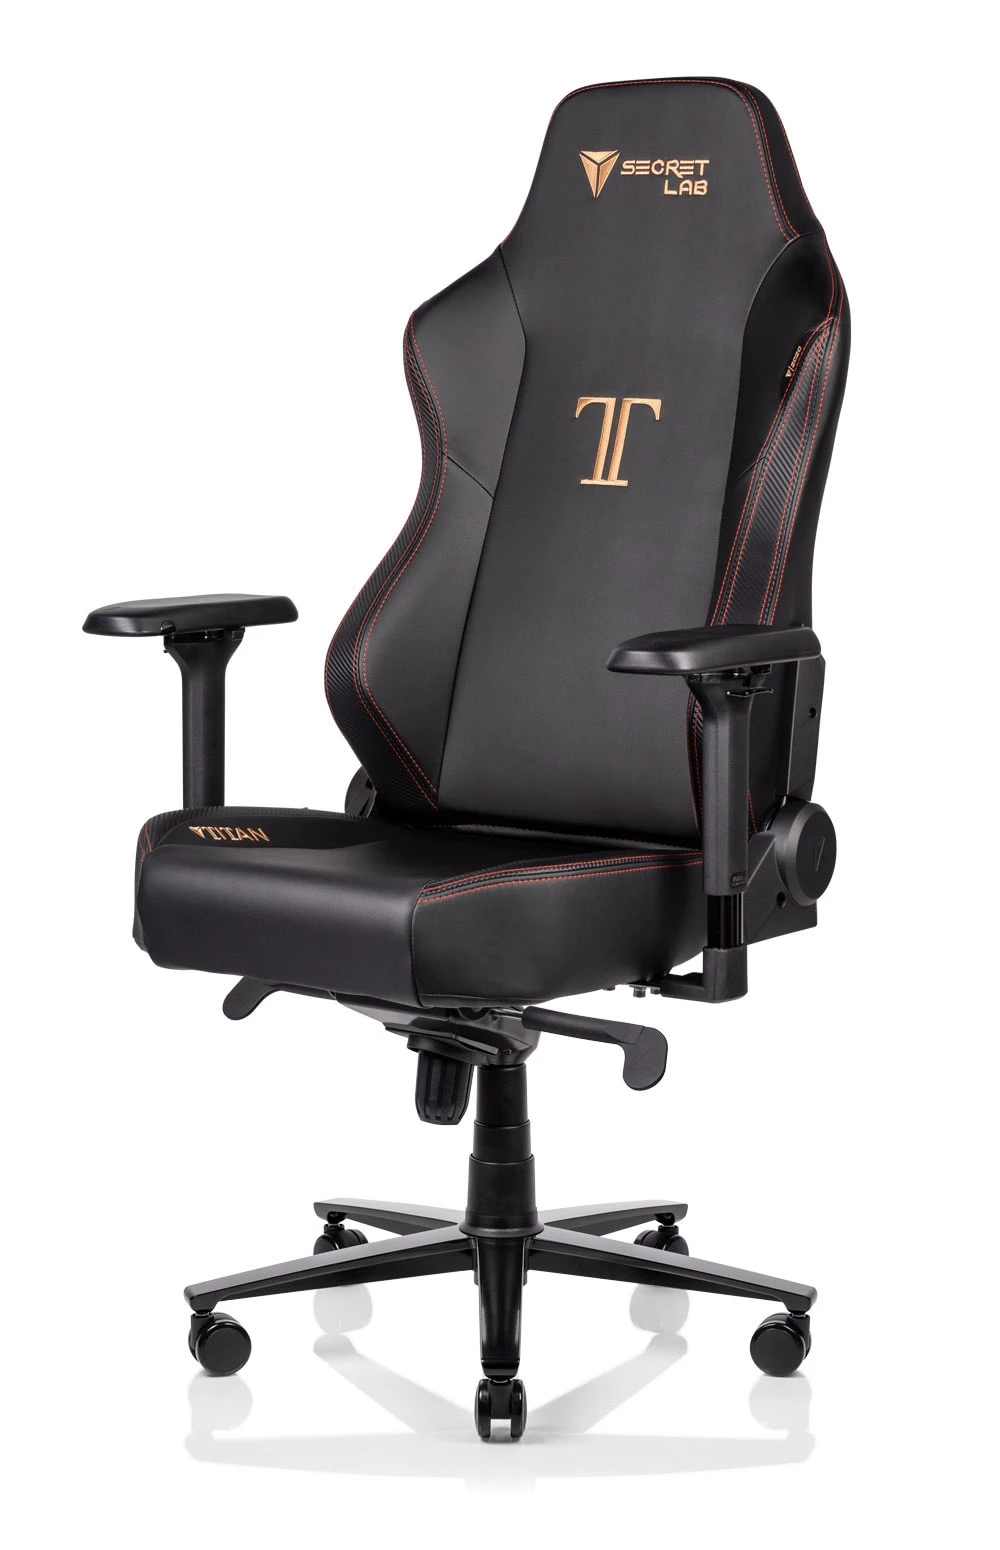 TITAN series gaming seats Secretlab US Gaming chair, Chair